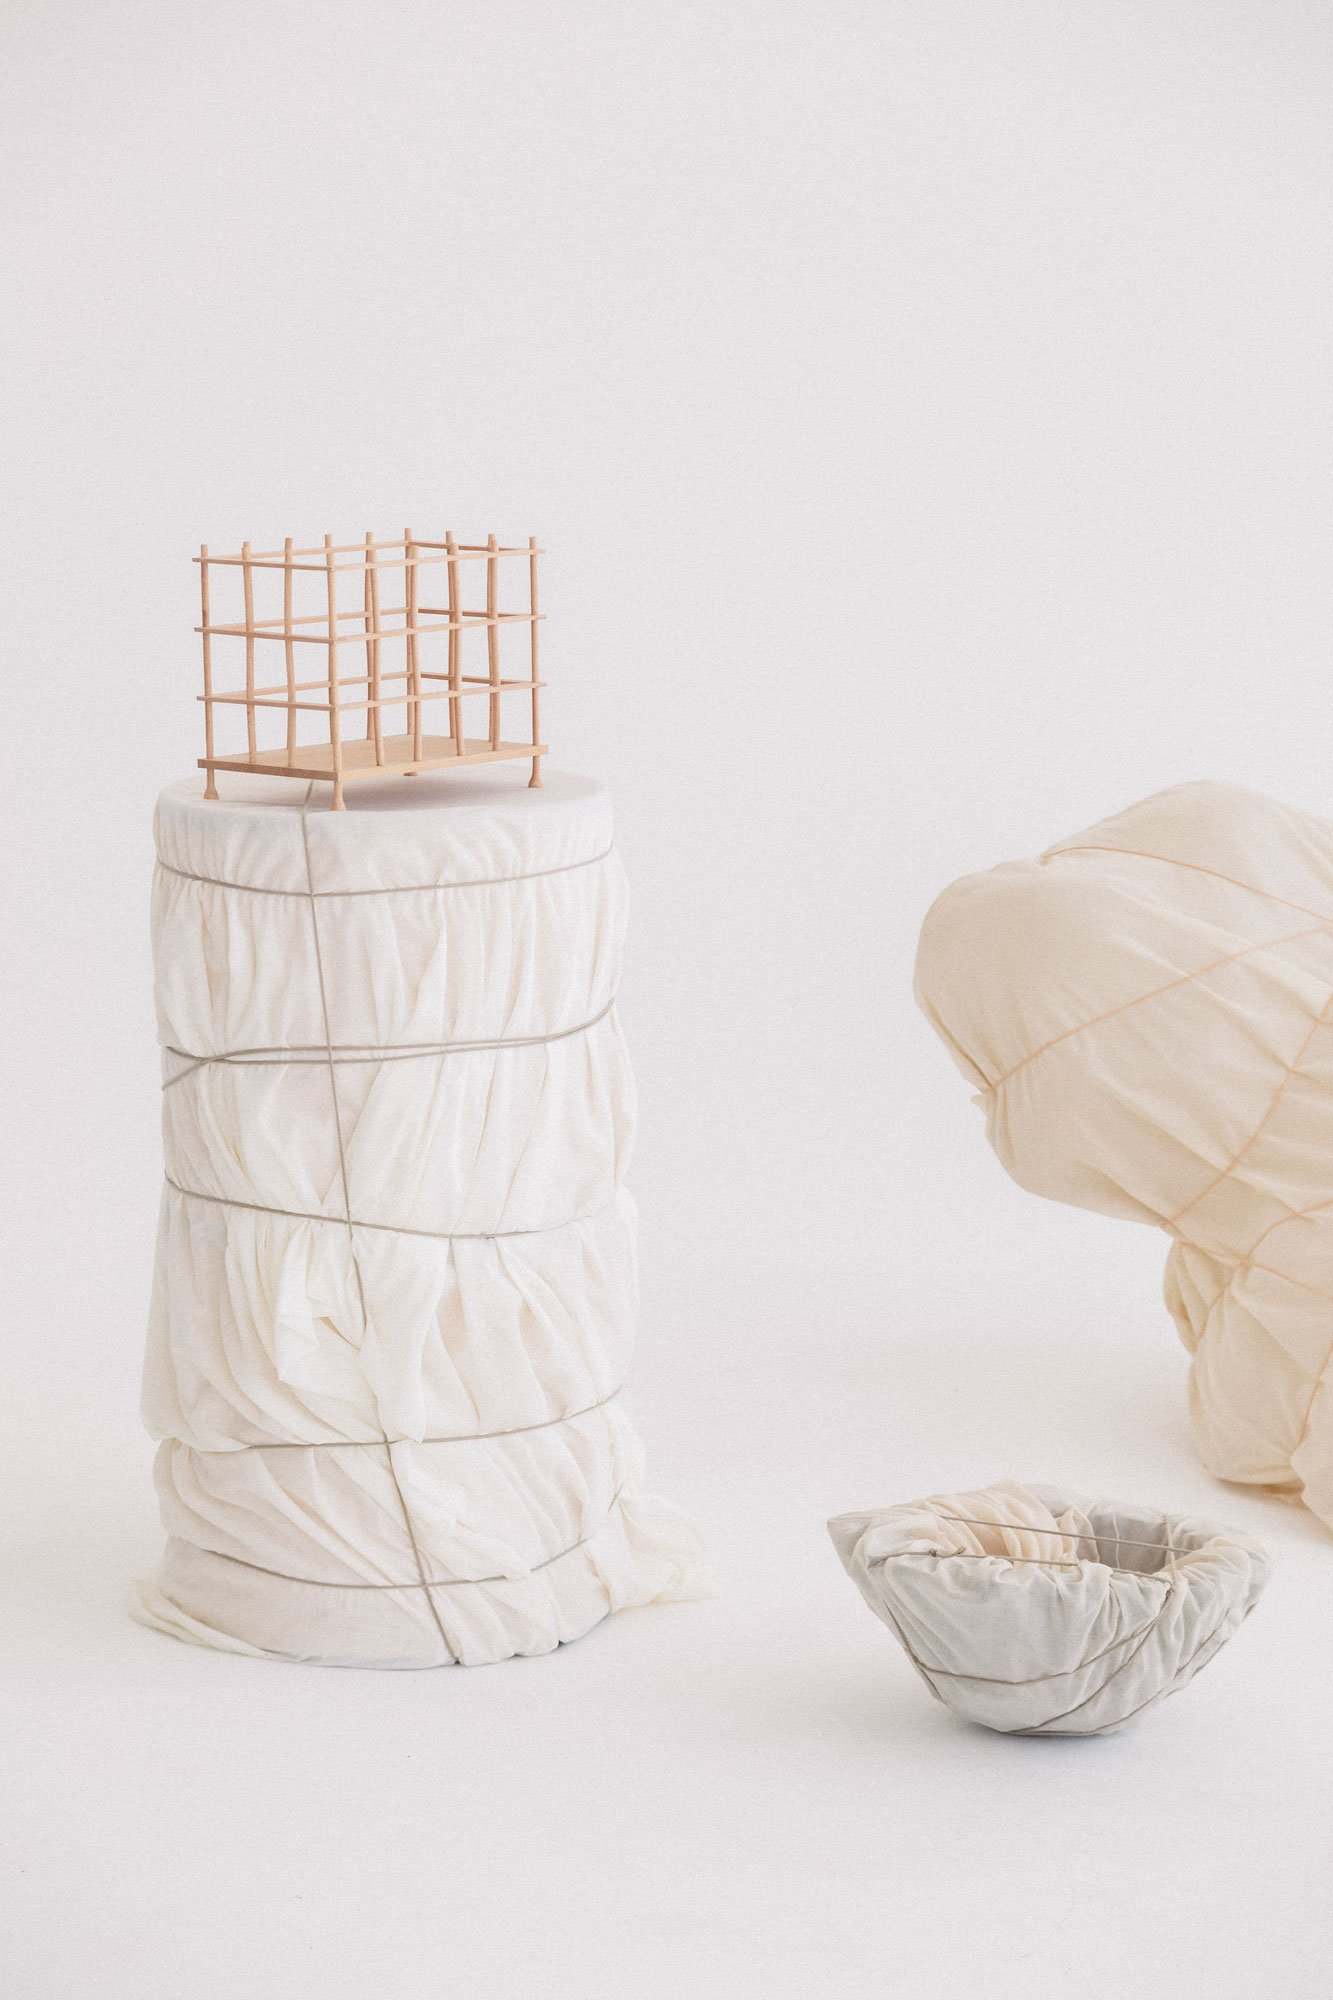 Ukurant Objects, 3daysofdesign 2020, jeunes designers, Anna Sogaard and Anders Nyberg